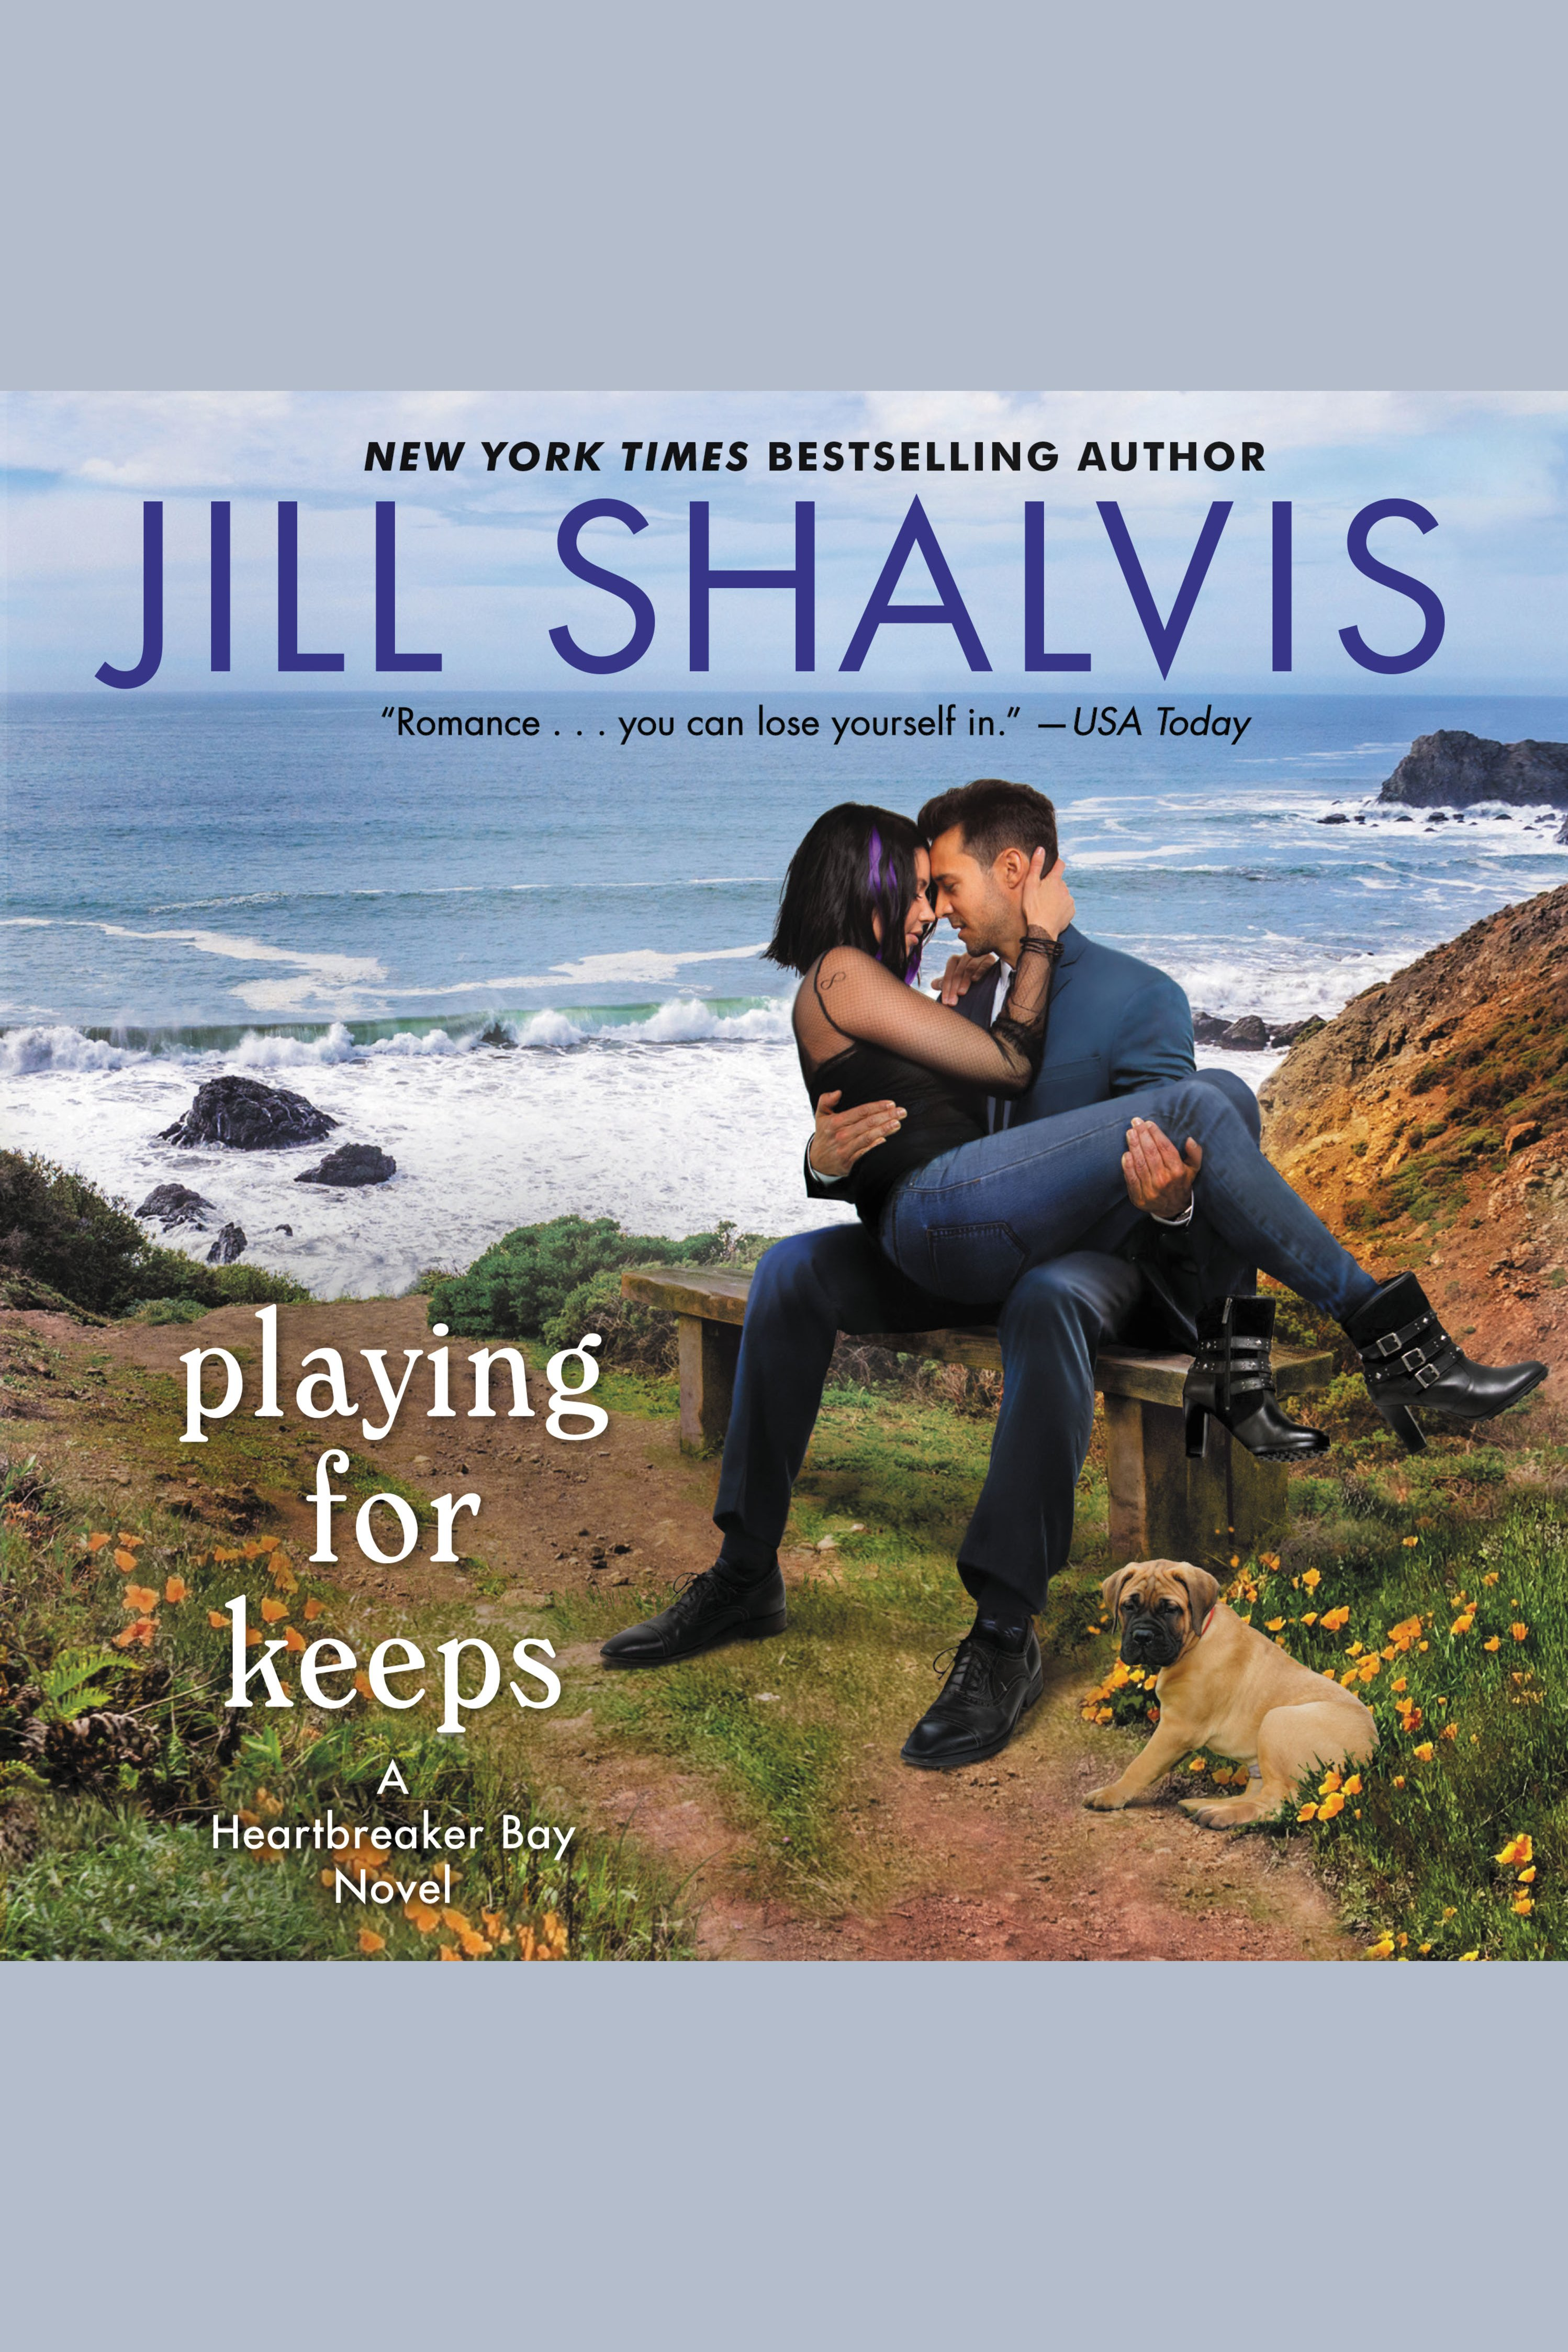 Playing for keeps a Heartbreaker Bay novel cover image